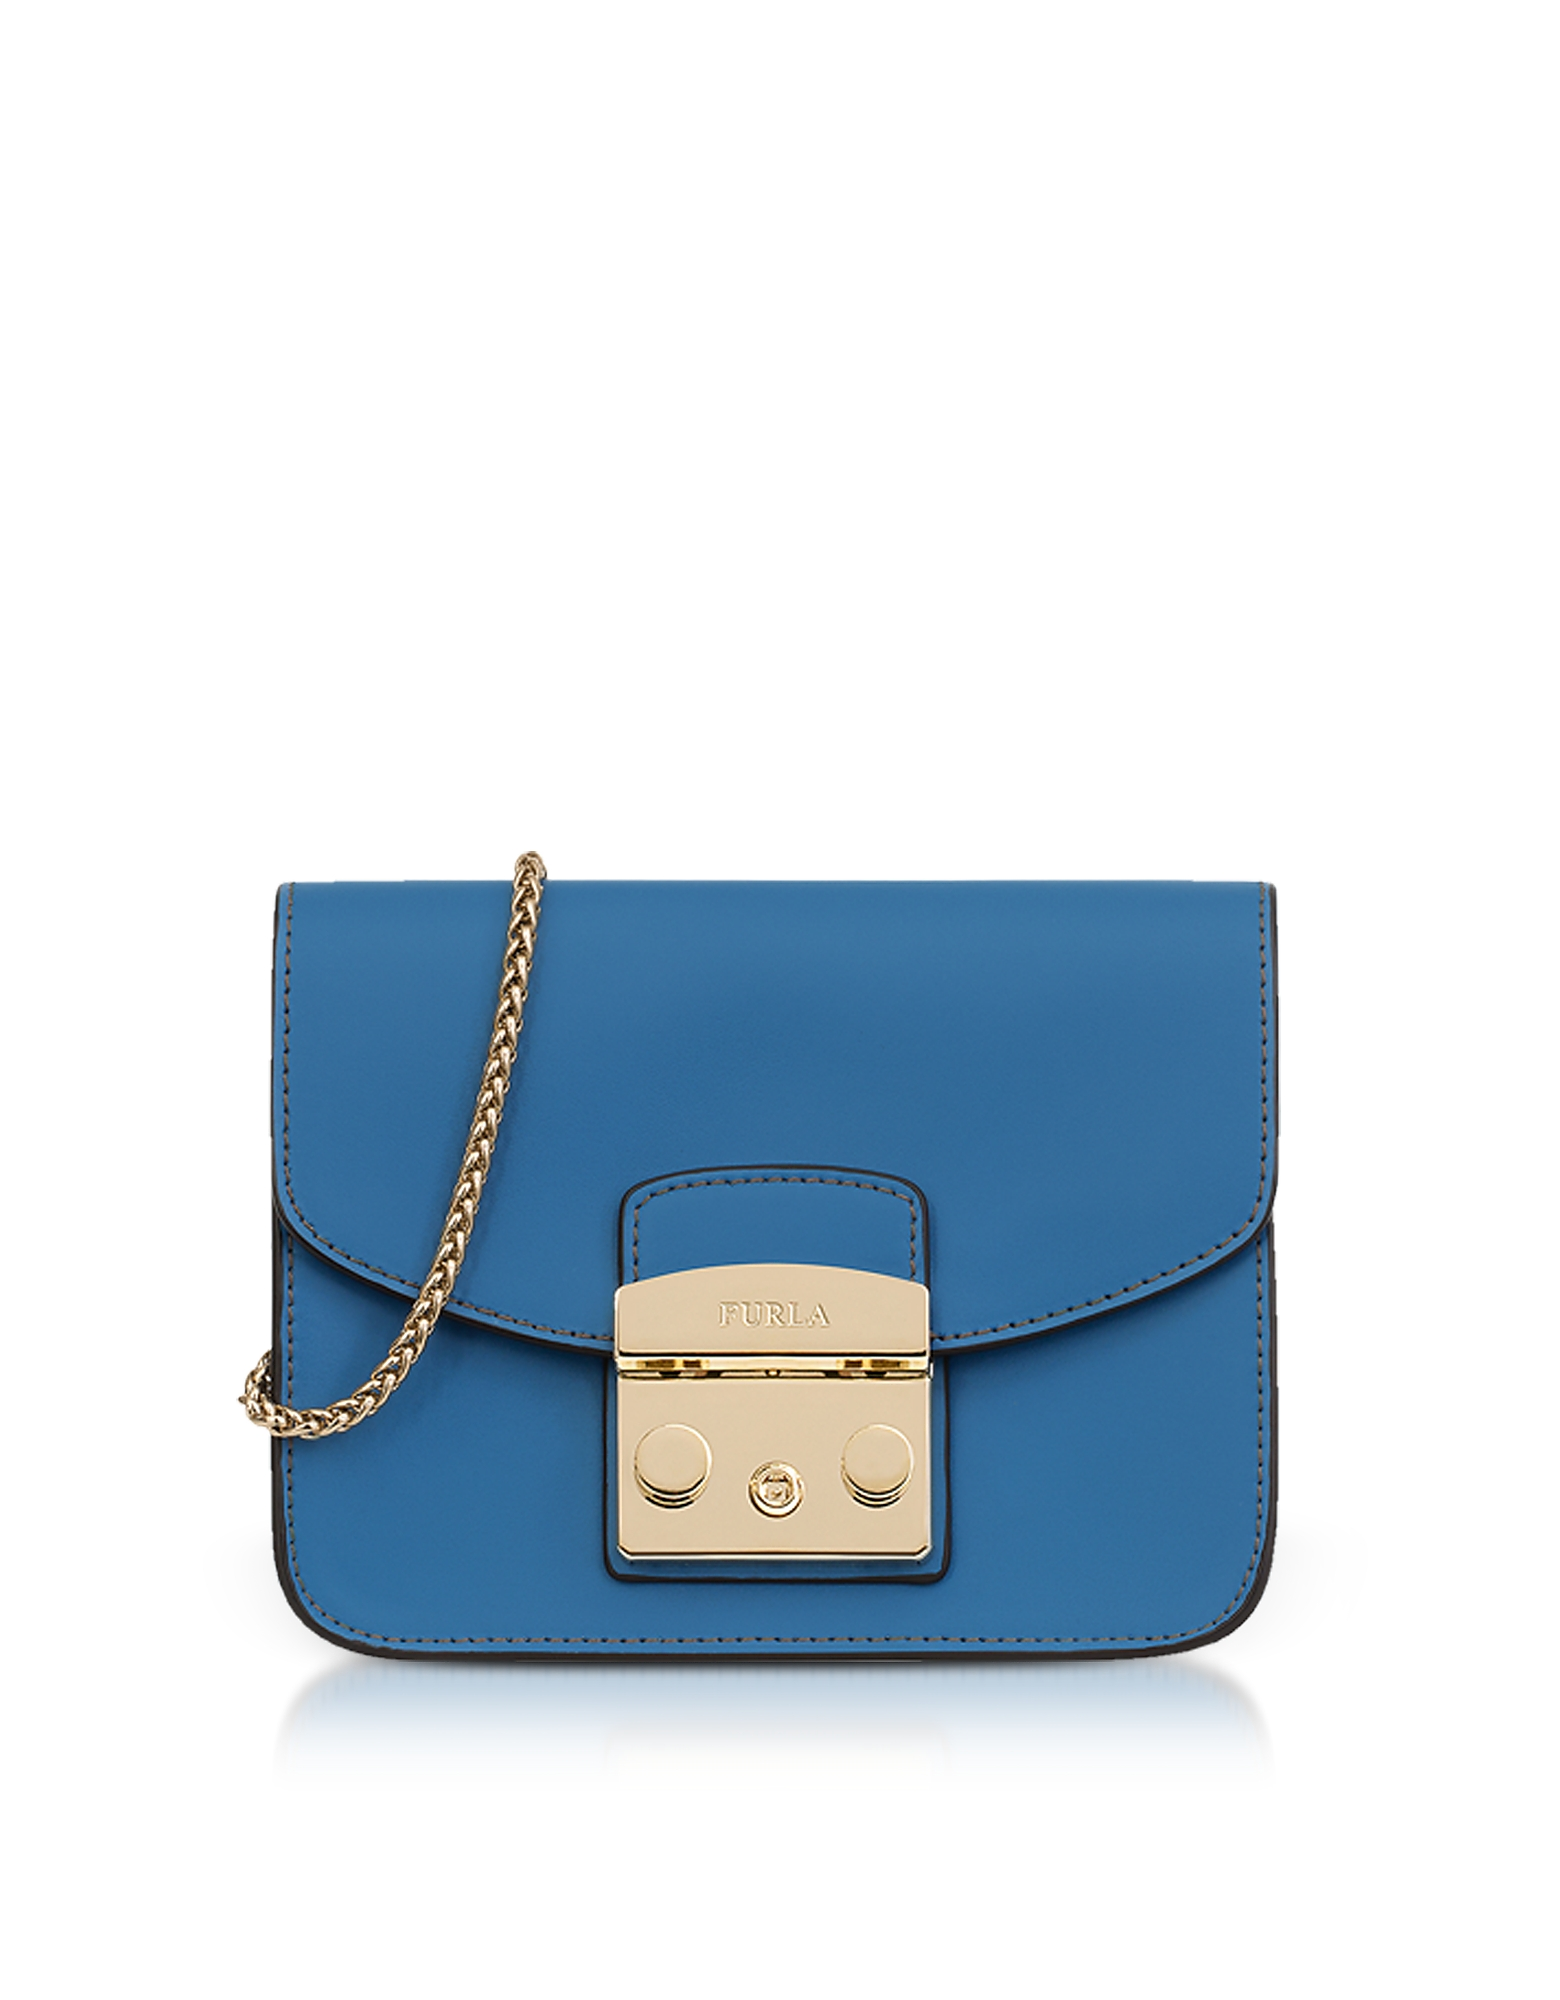 Furla Handbags, Genziana Smooth Leather Metropolis Mini Crossbody Bag